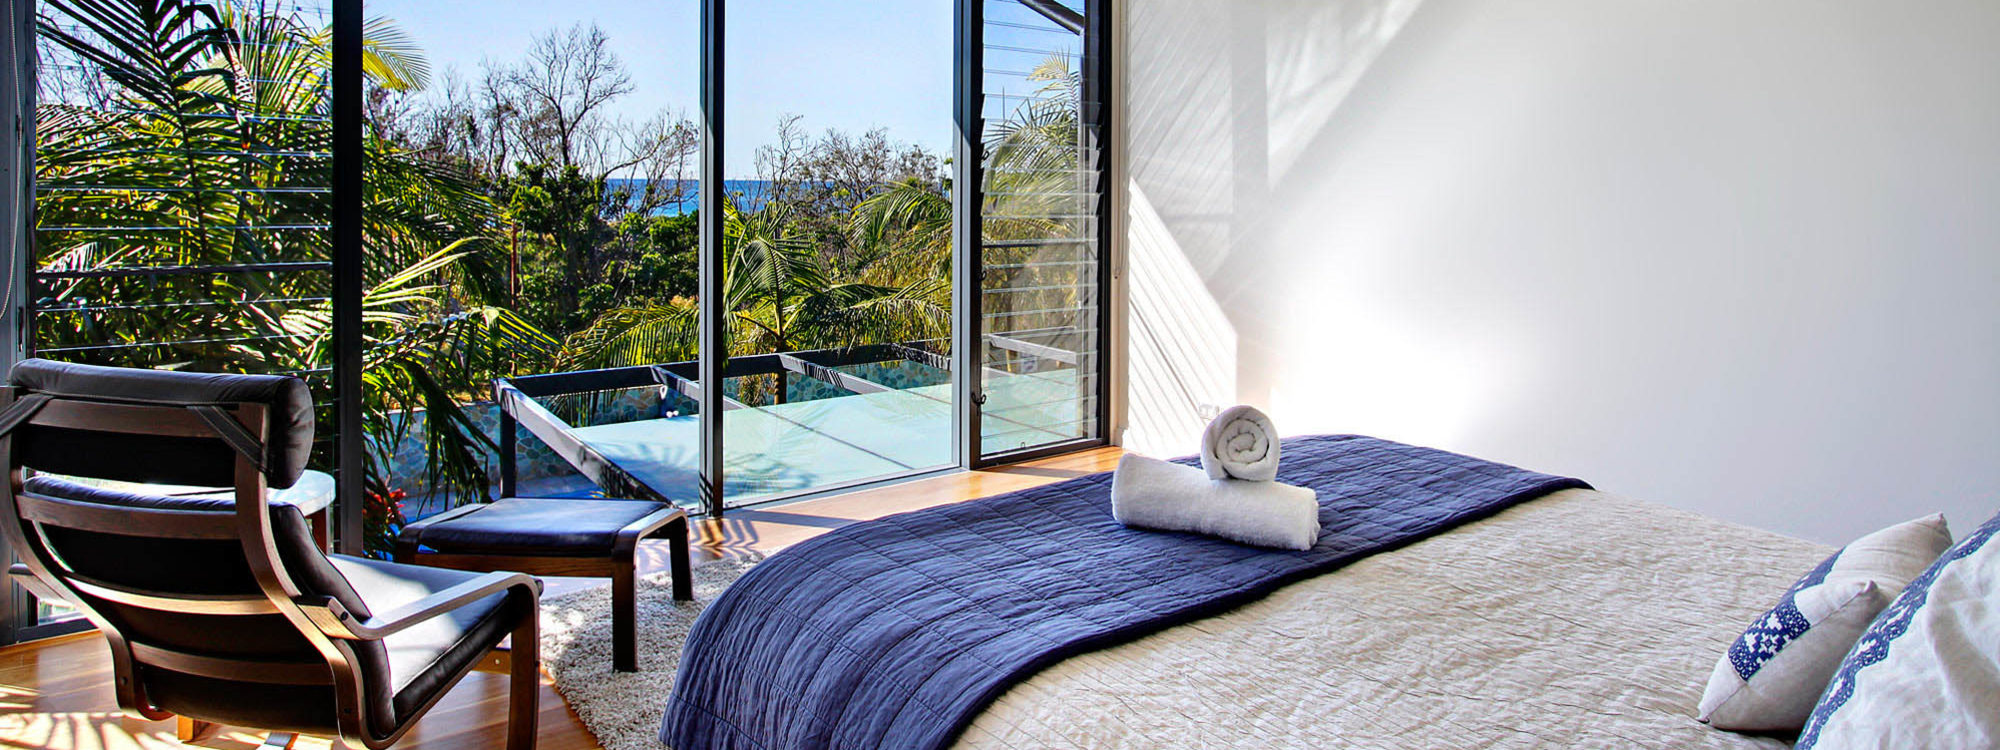 Ocean View at Kiah - Byron Bay - Bedroom Master c